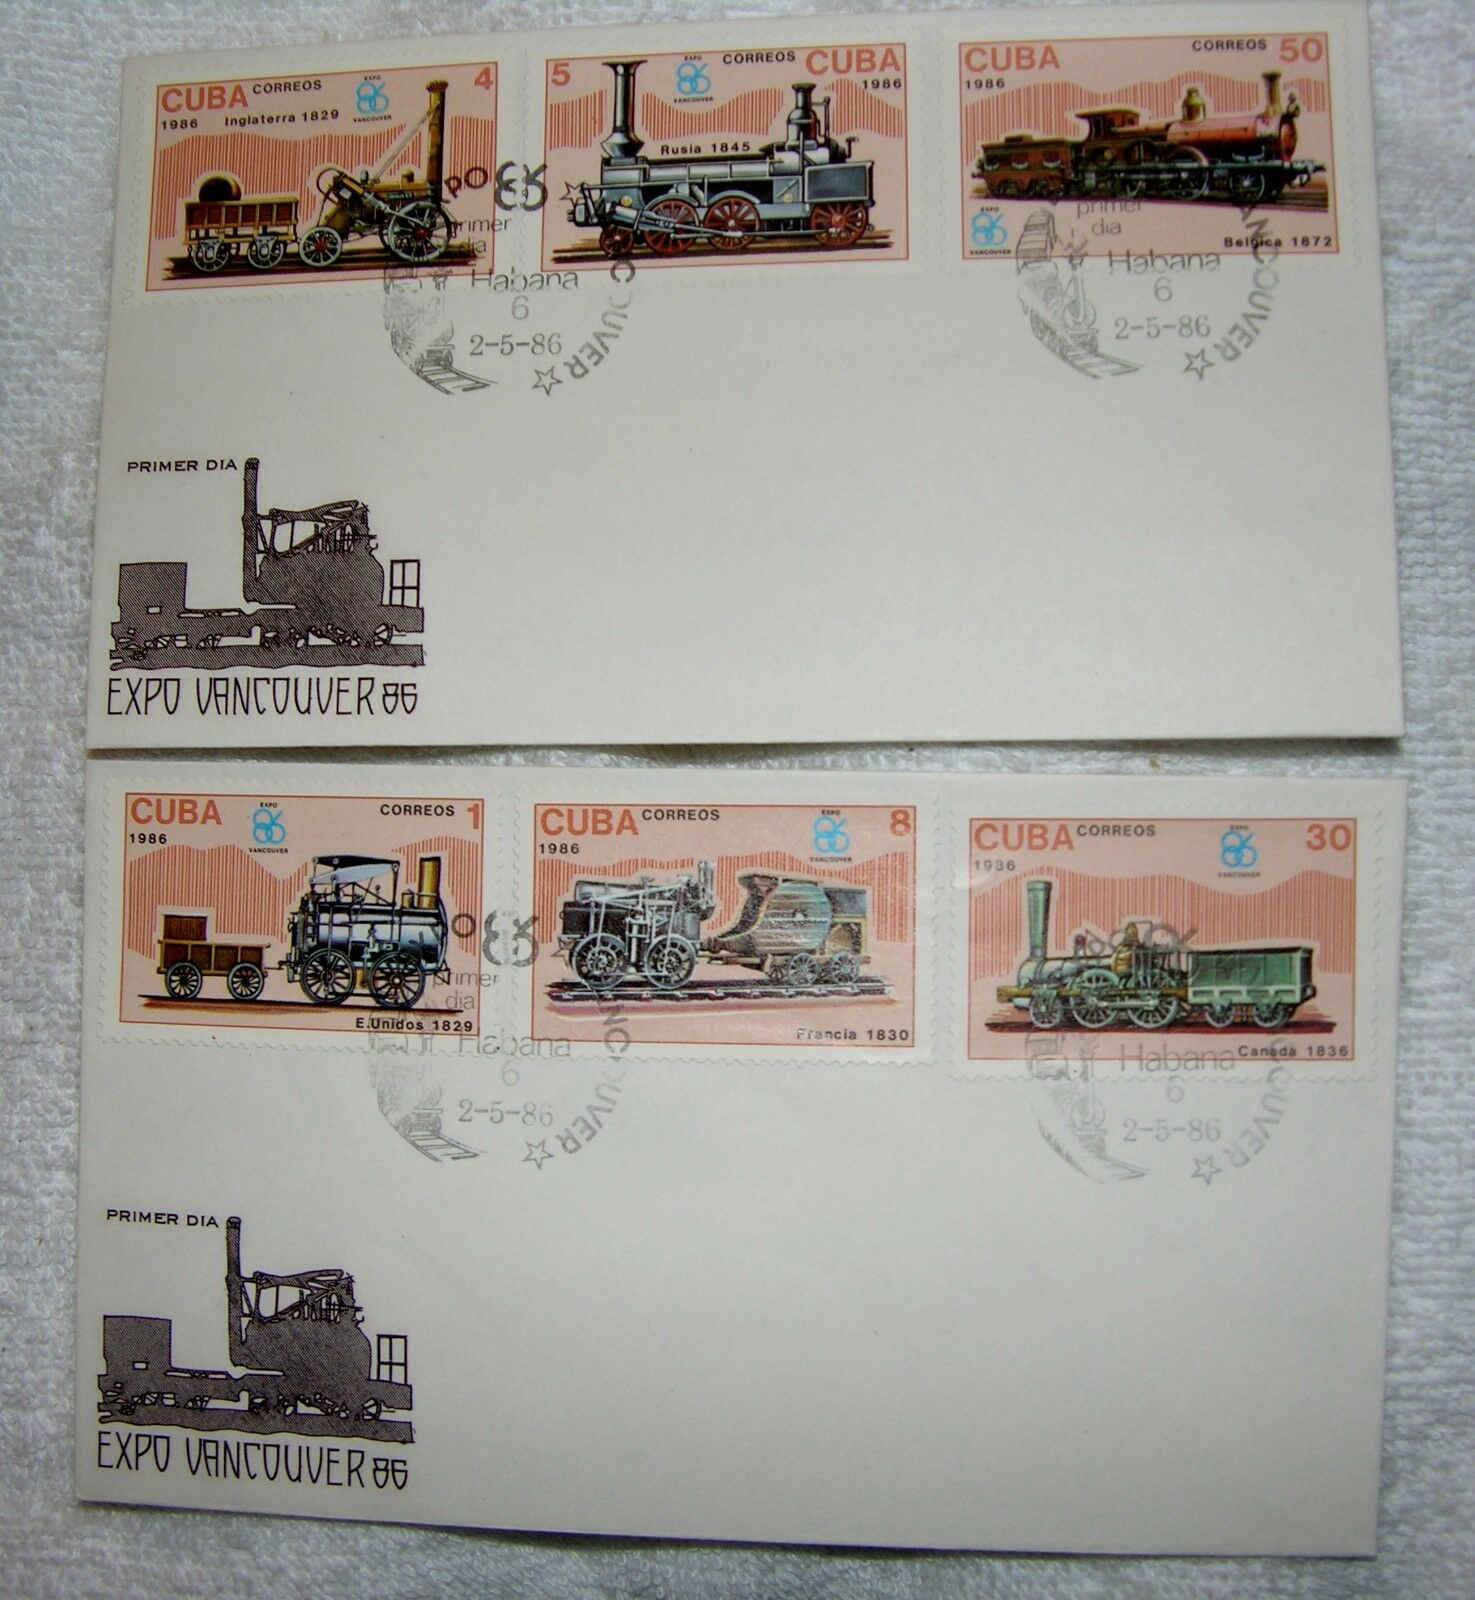 FIRST DAY OF ISSUE 2 Envelopes 6 Stamps Railroad Expo Vancouver 86 - $7.90